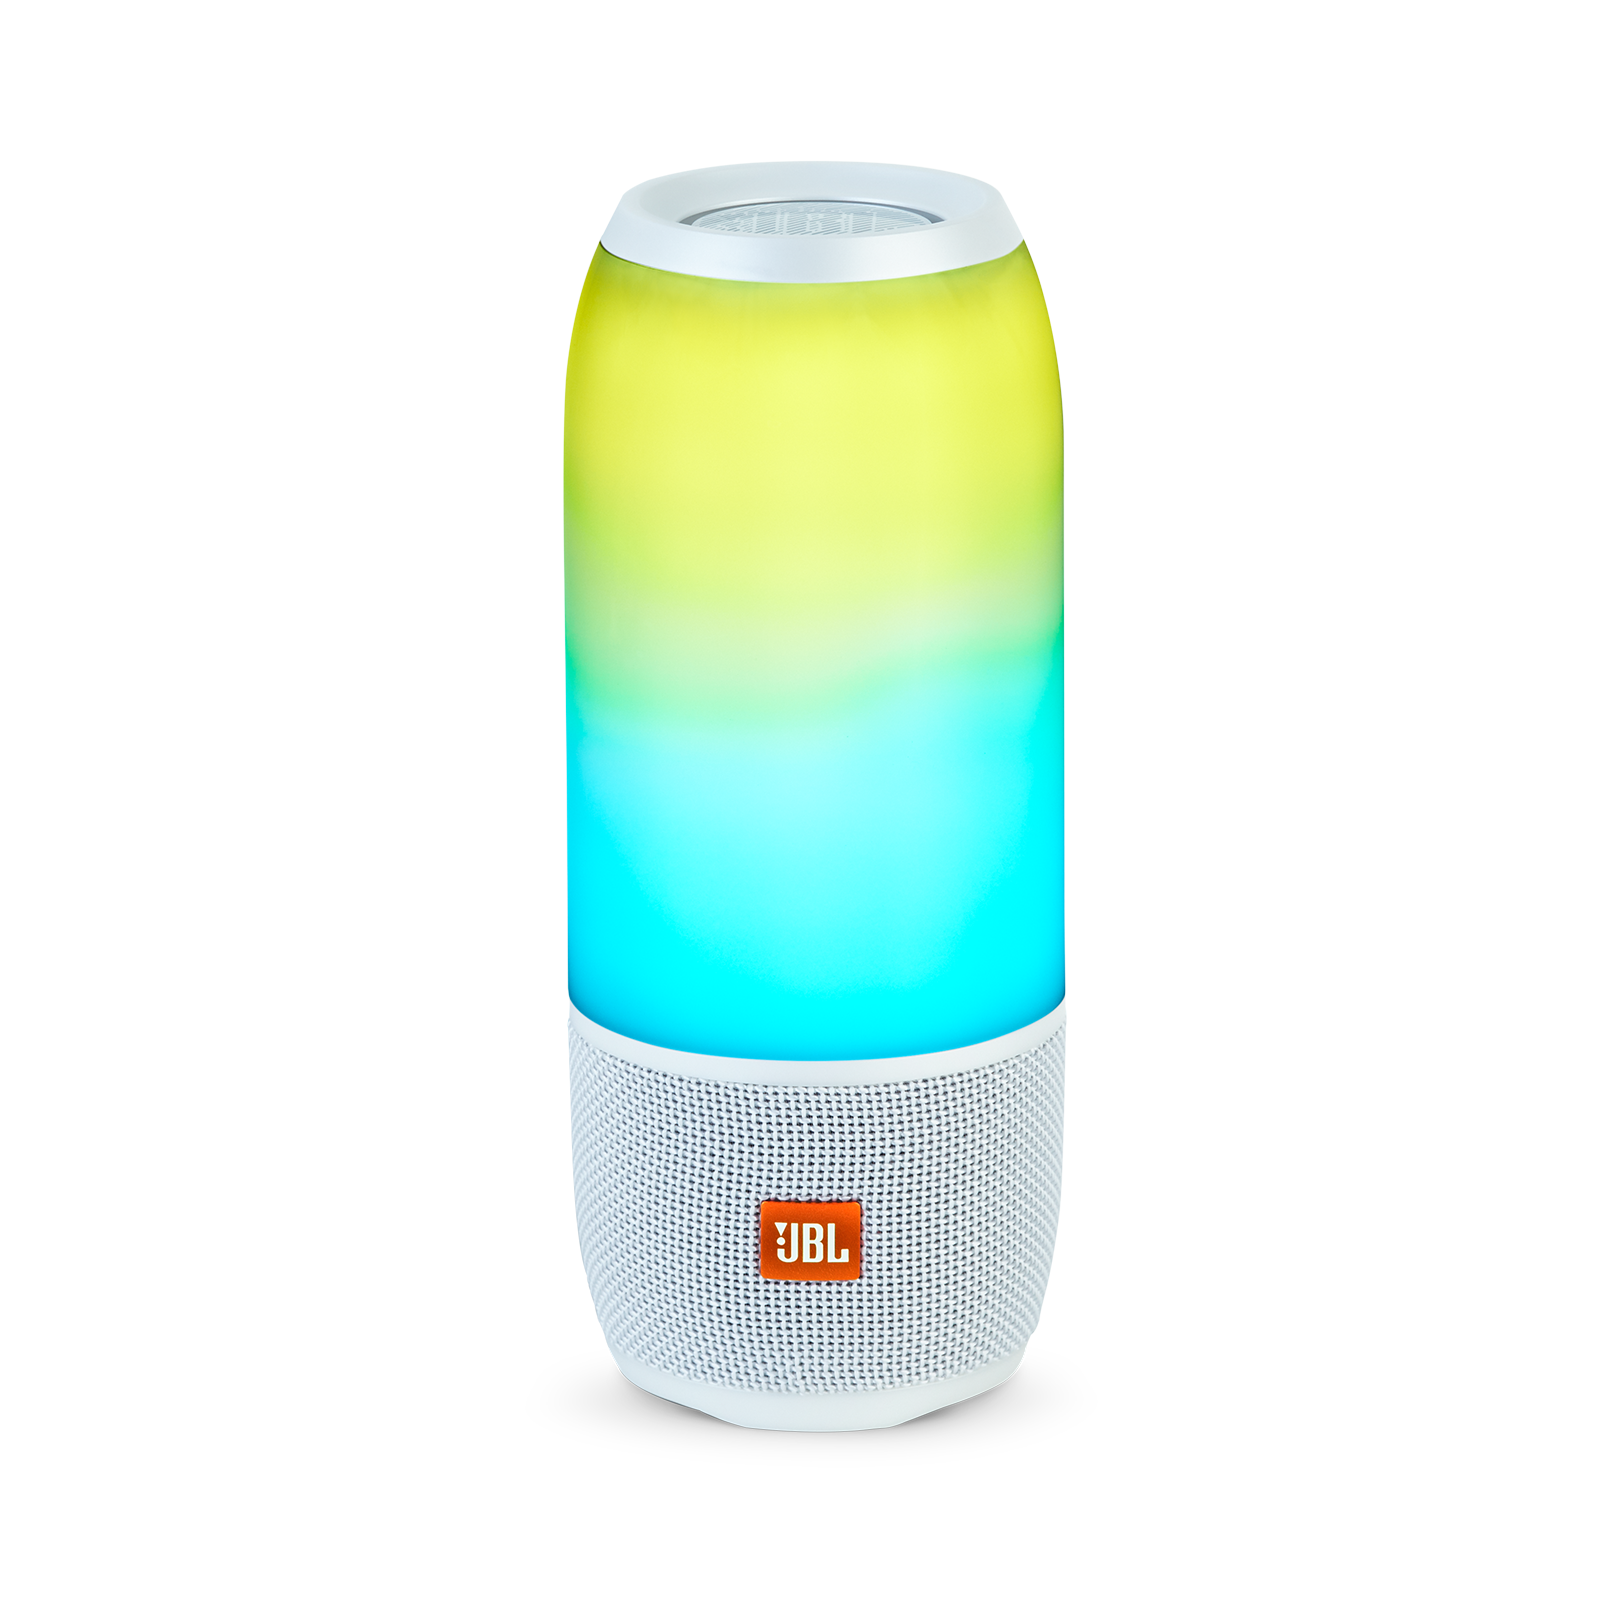 JBL Pulse 3 Portable Wireless Speaker - White (PULSE3-WH)